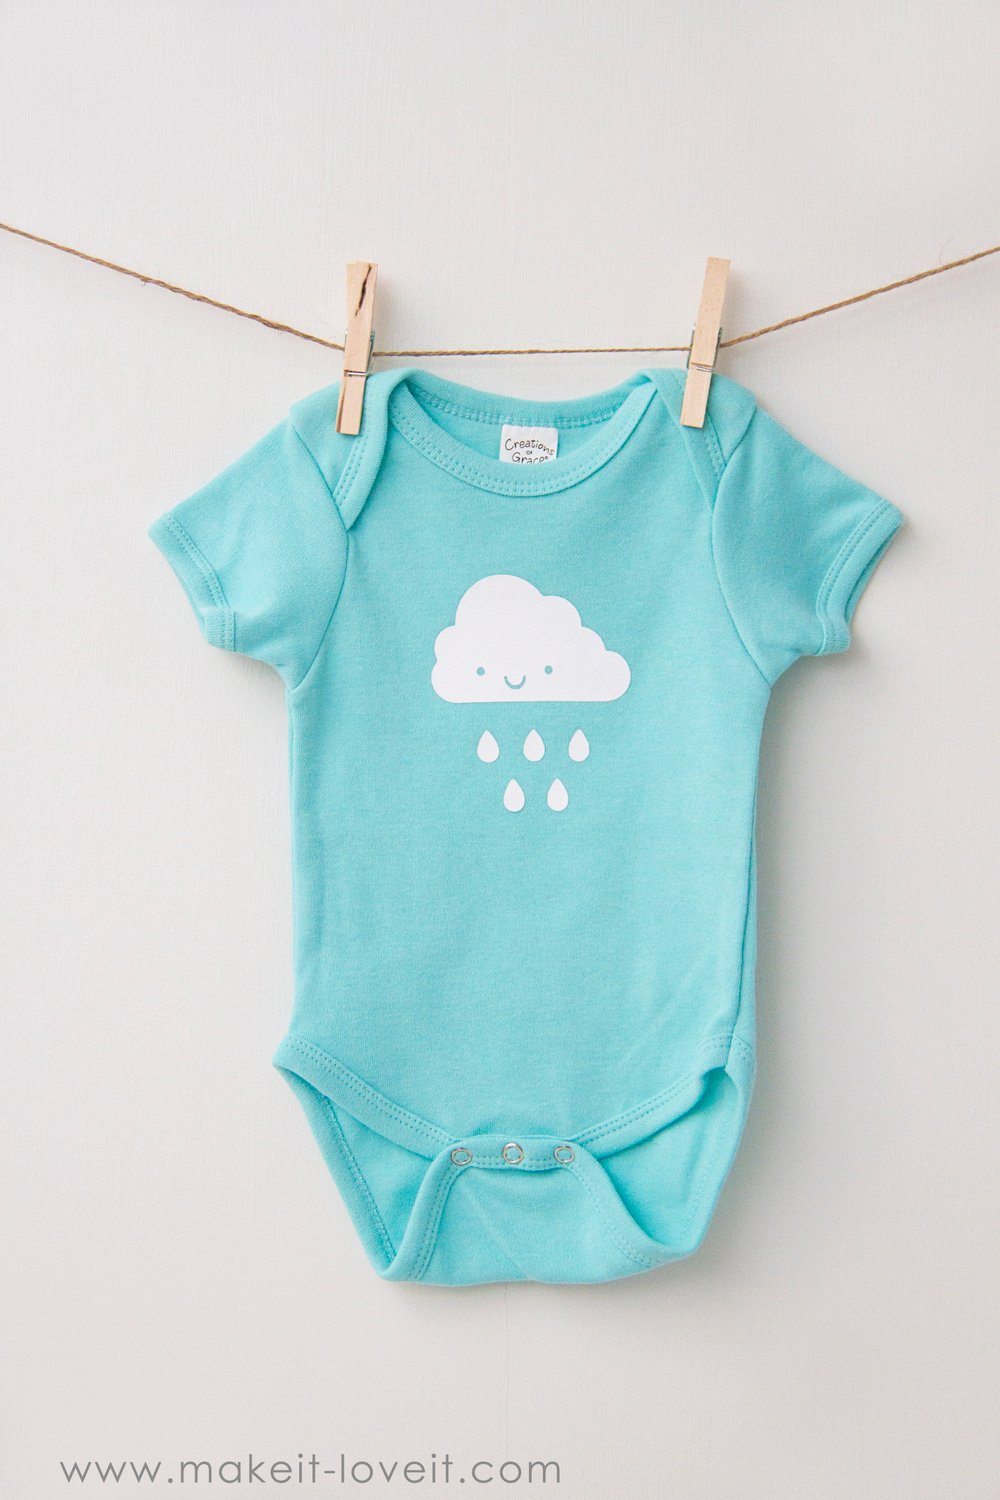 Simple DIY Baby Onesie Ideas – Make It and Love It